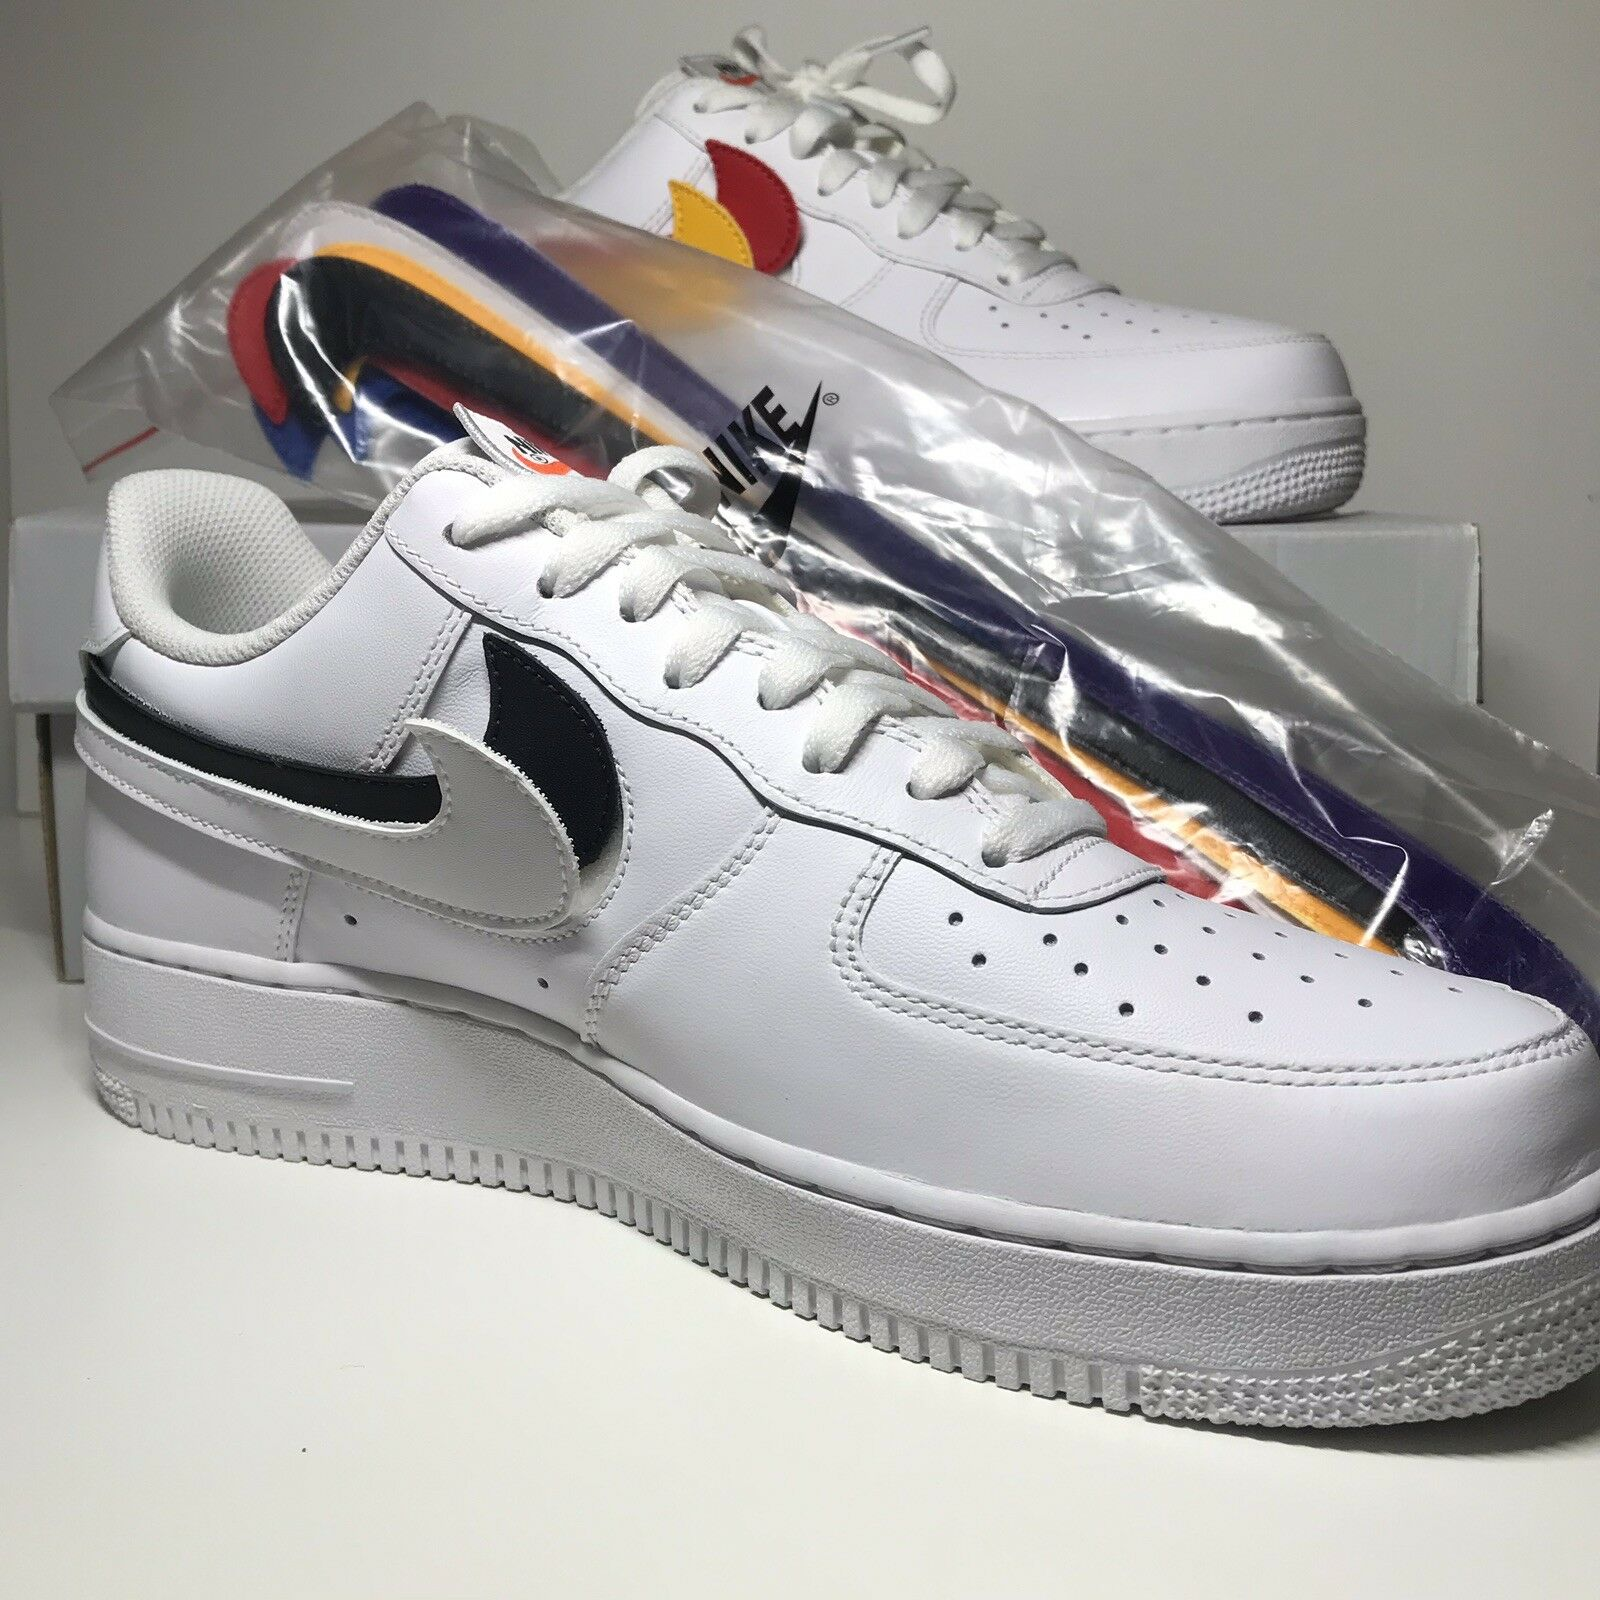 NIKE AIR FORCE 1 '07 QS ALL STAR SWOOSH PACK ALL WHITE AH8462-102 Sz 10 LIMITED